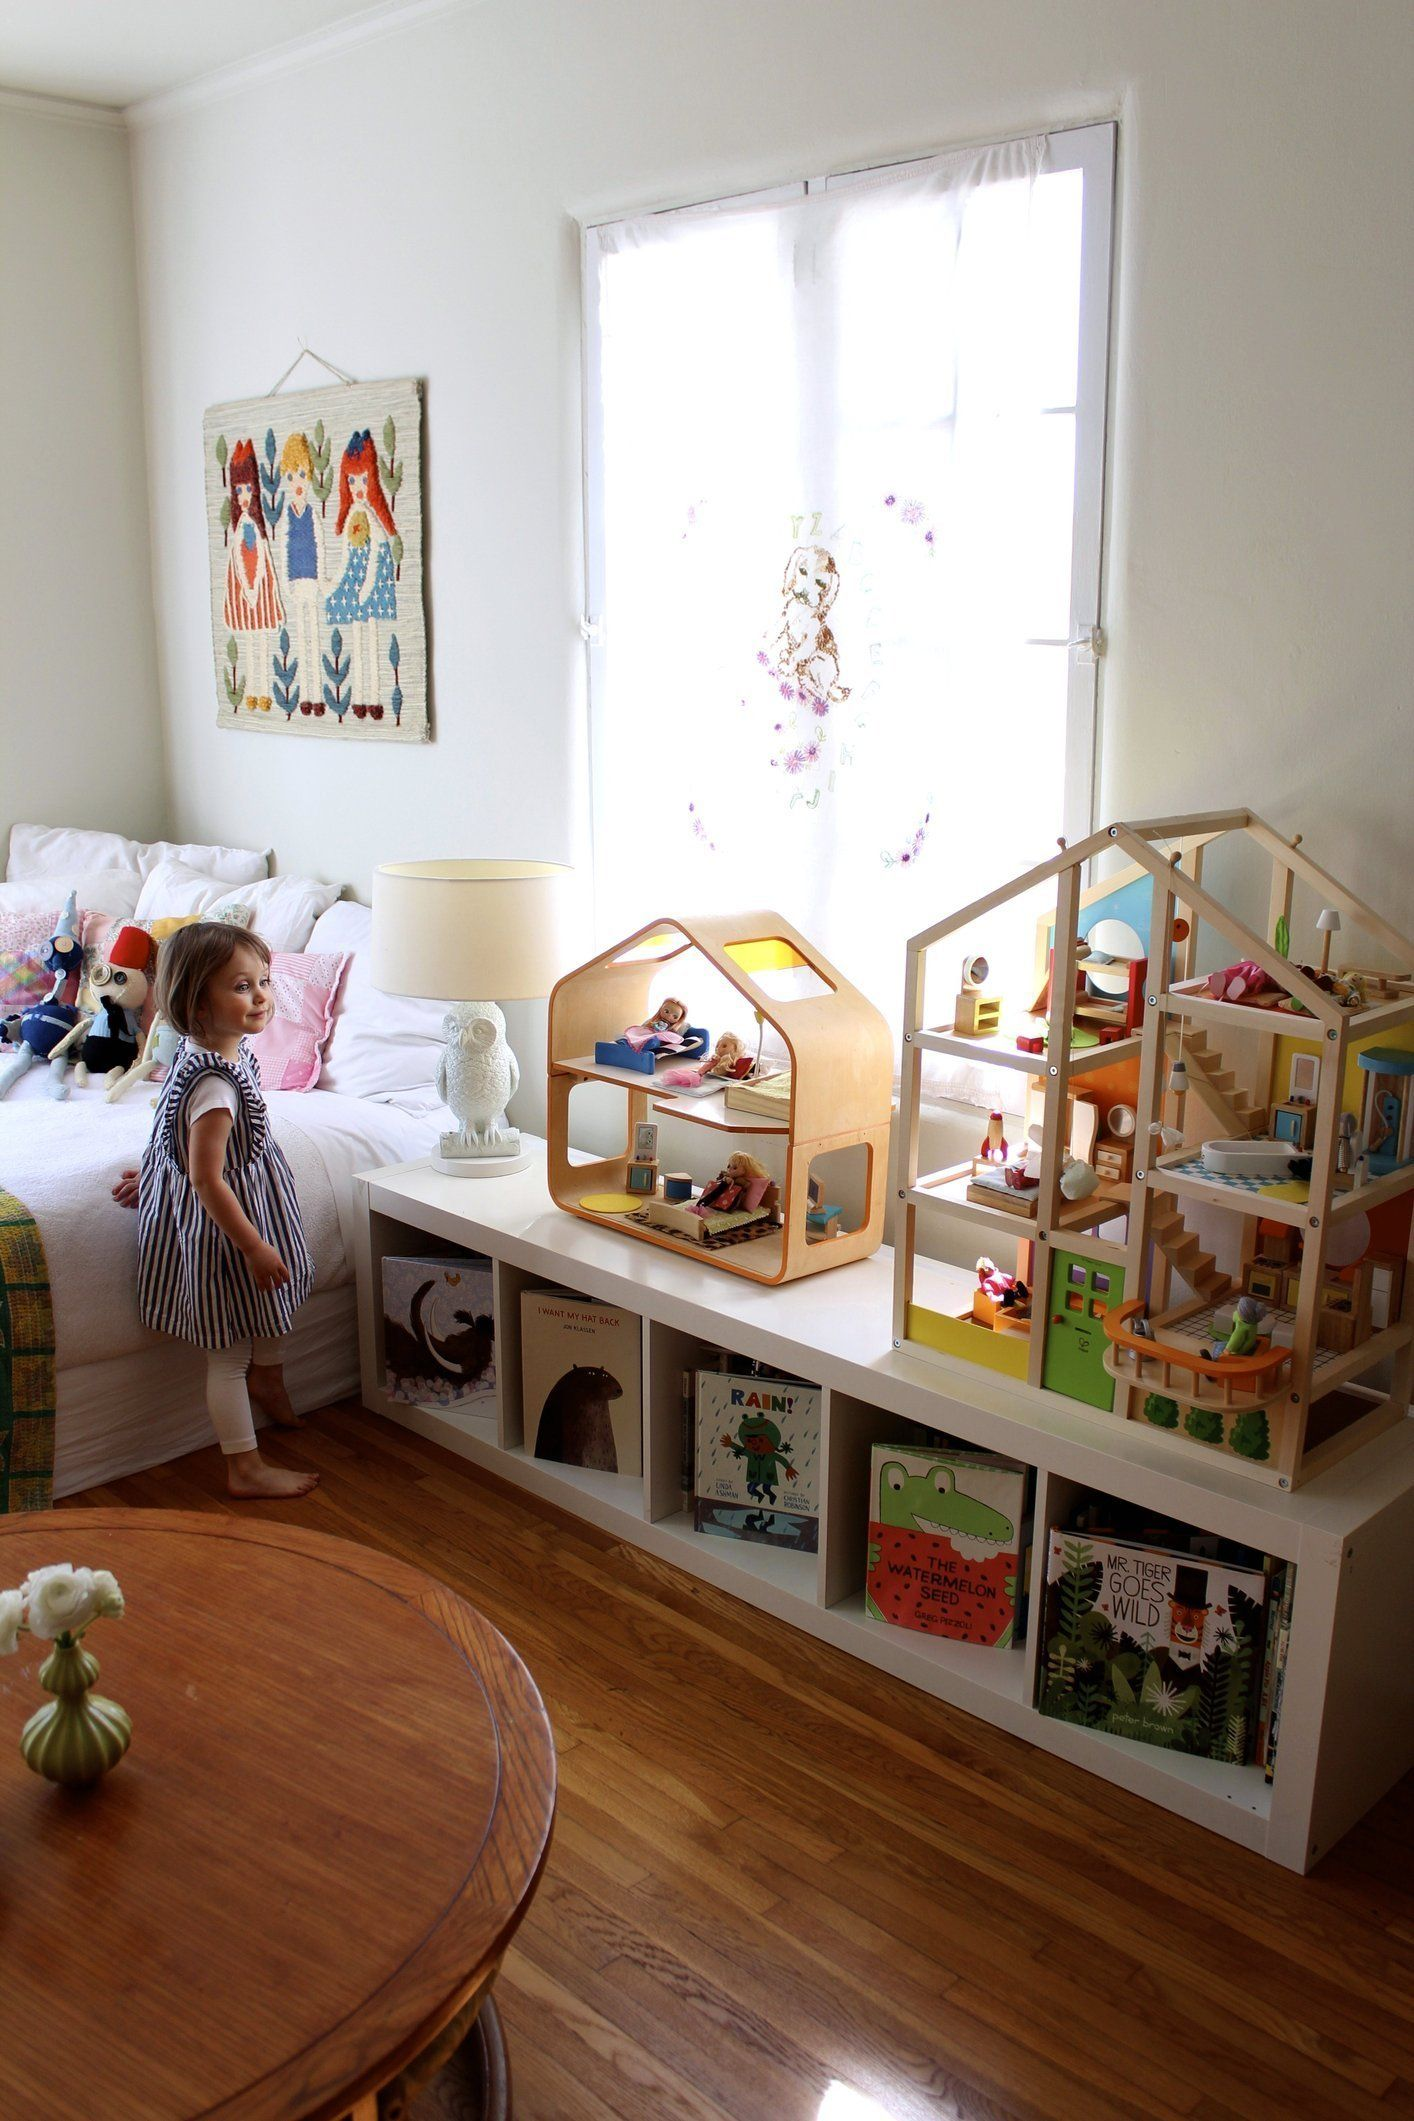 10 Toys Every Child Should Have